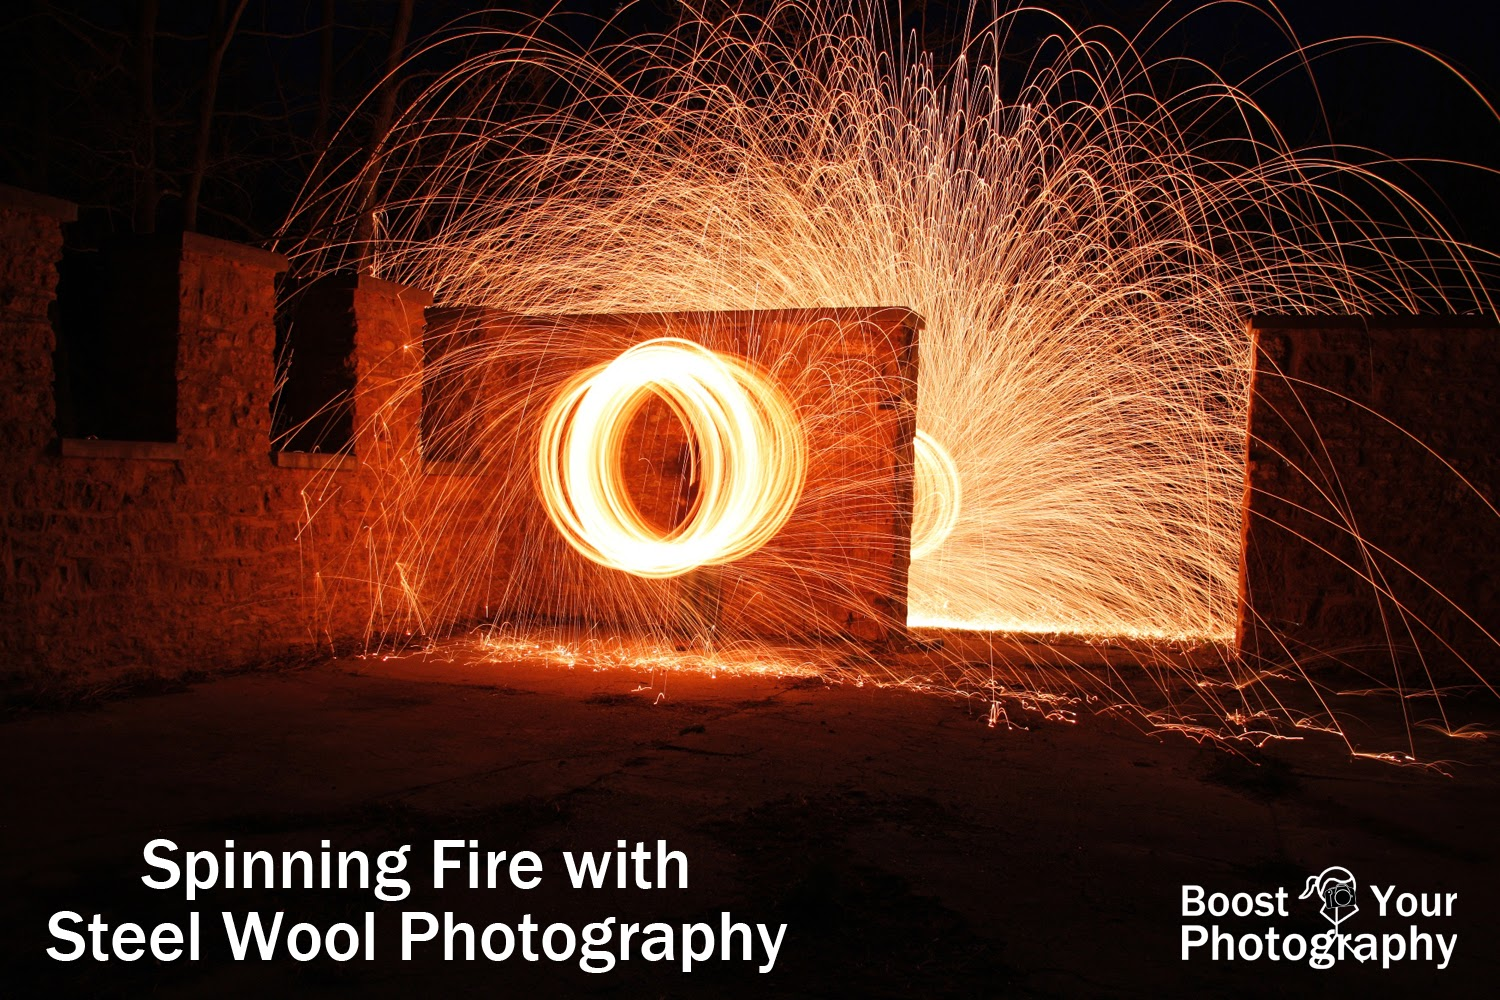 steel wool photography, photography, steel wool, spinning fire, how to